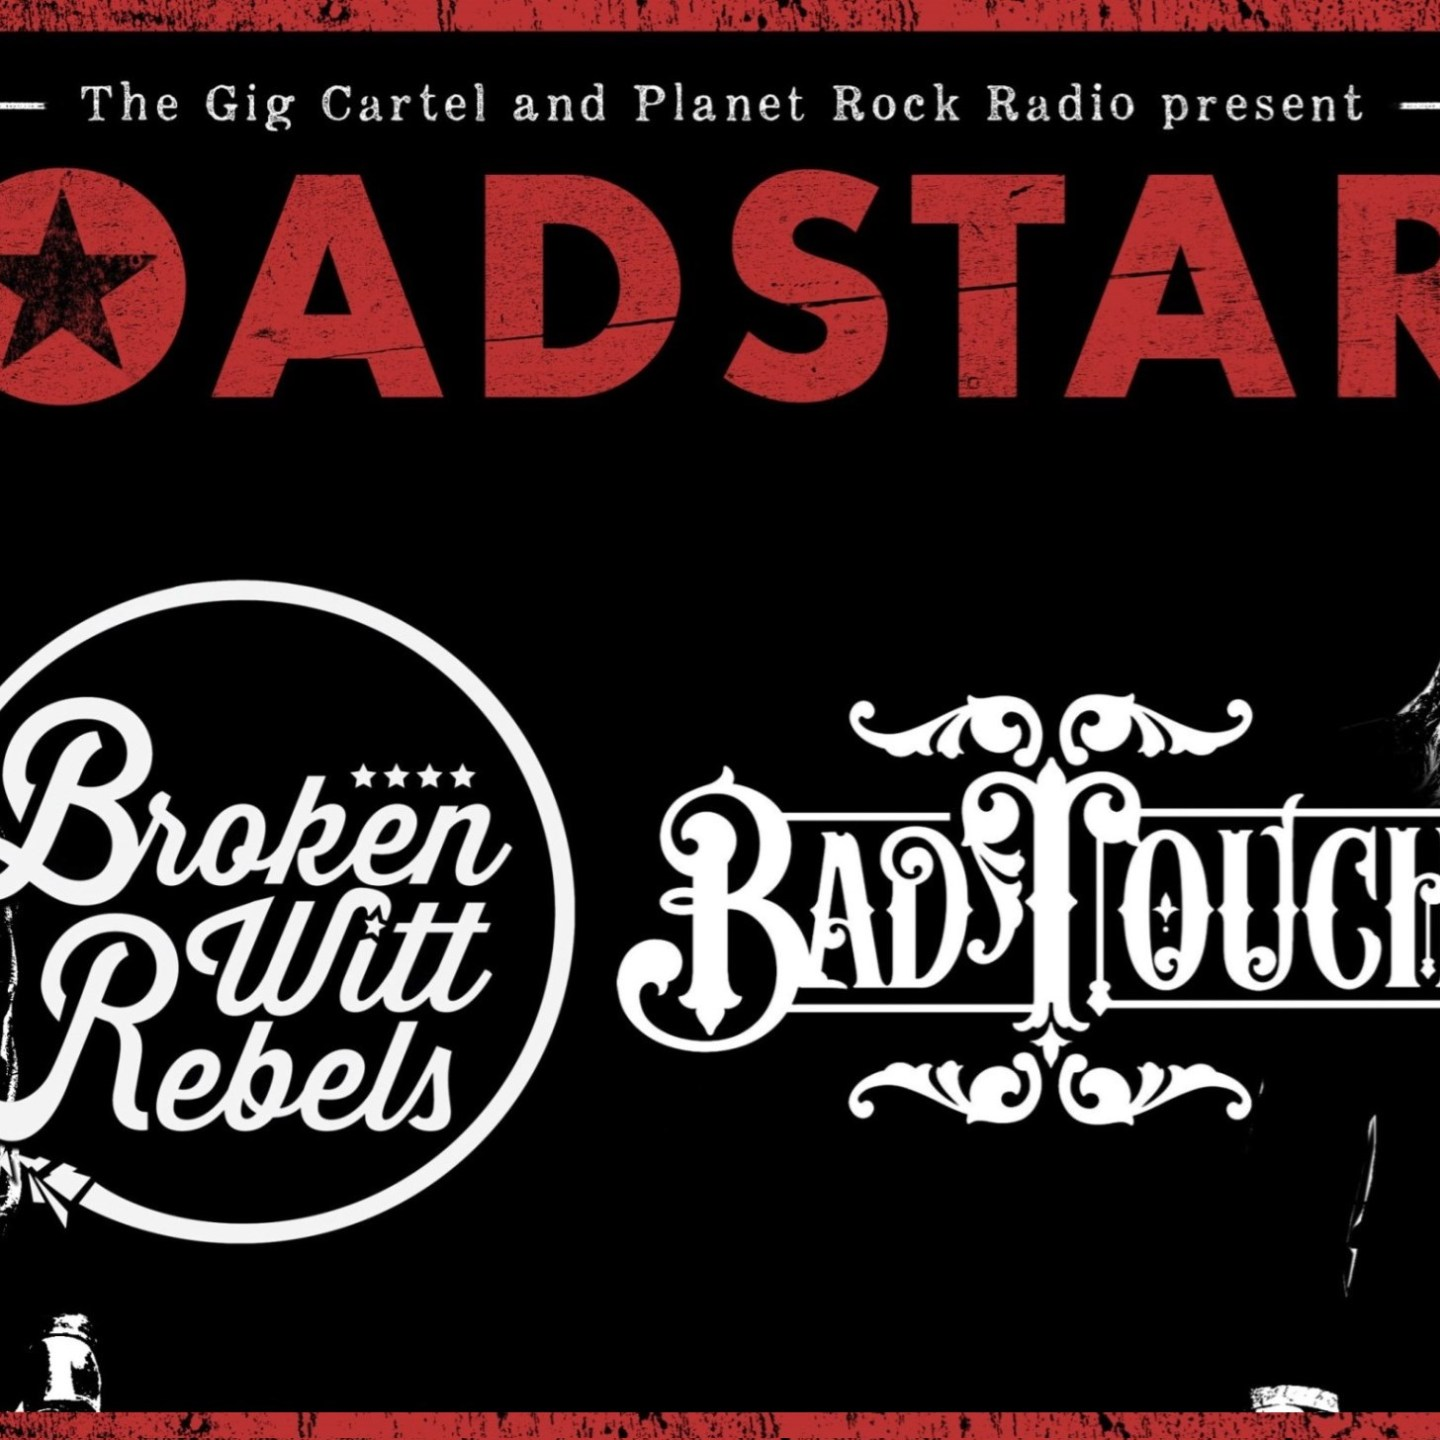 Interview/Preview: The Roadstars Tour Feat. Broken Witt Rebels & Bad Touch